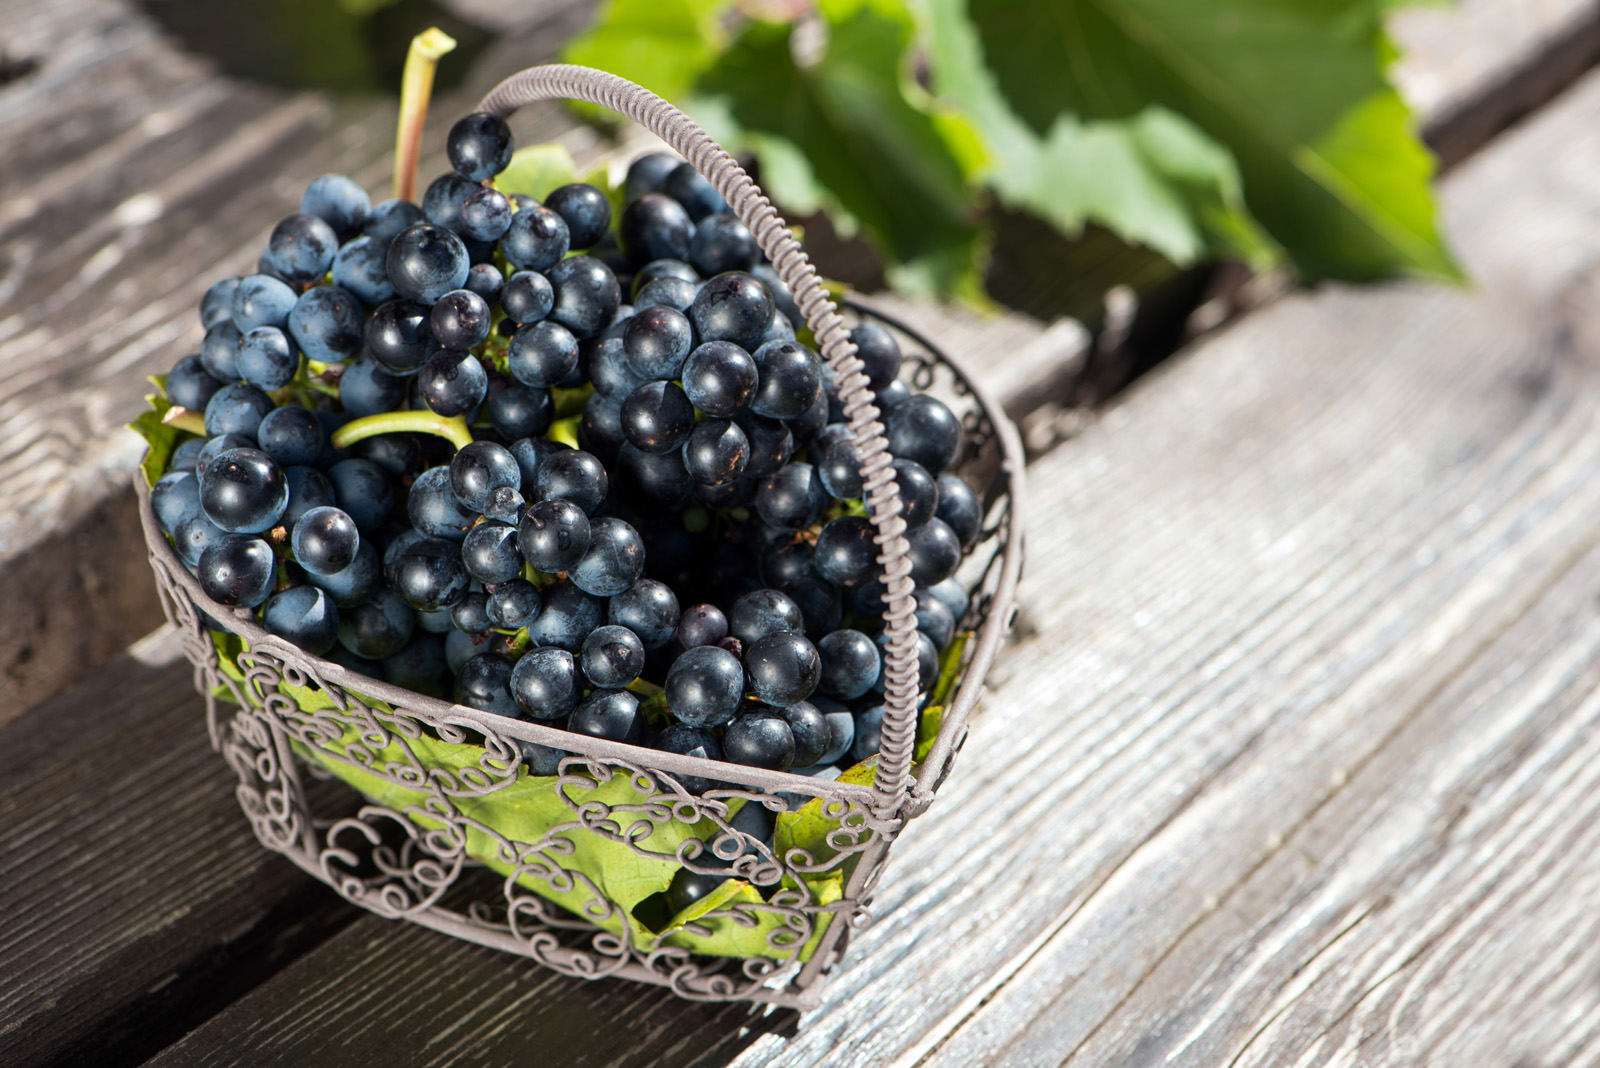 Placed in the basket of grapes 50862